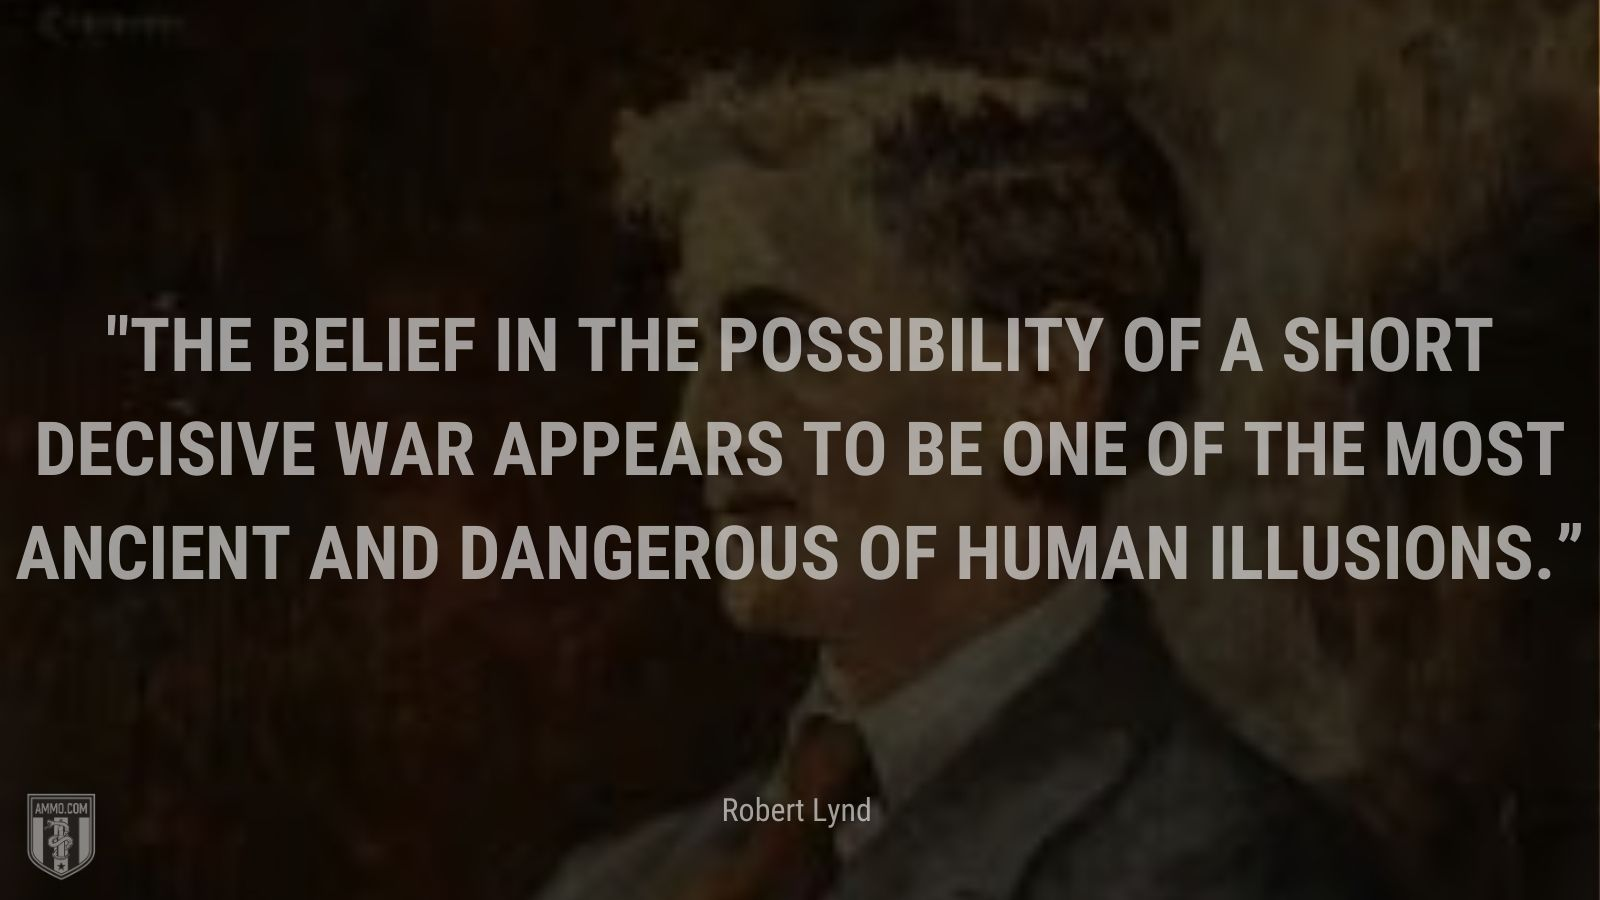 """""""The belief in the possibility of a short decisive war appears to be one of the most ancient and dangerous of human illusions."""" - Robert Lynde"""